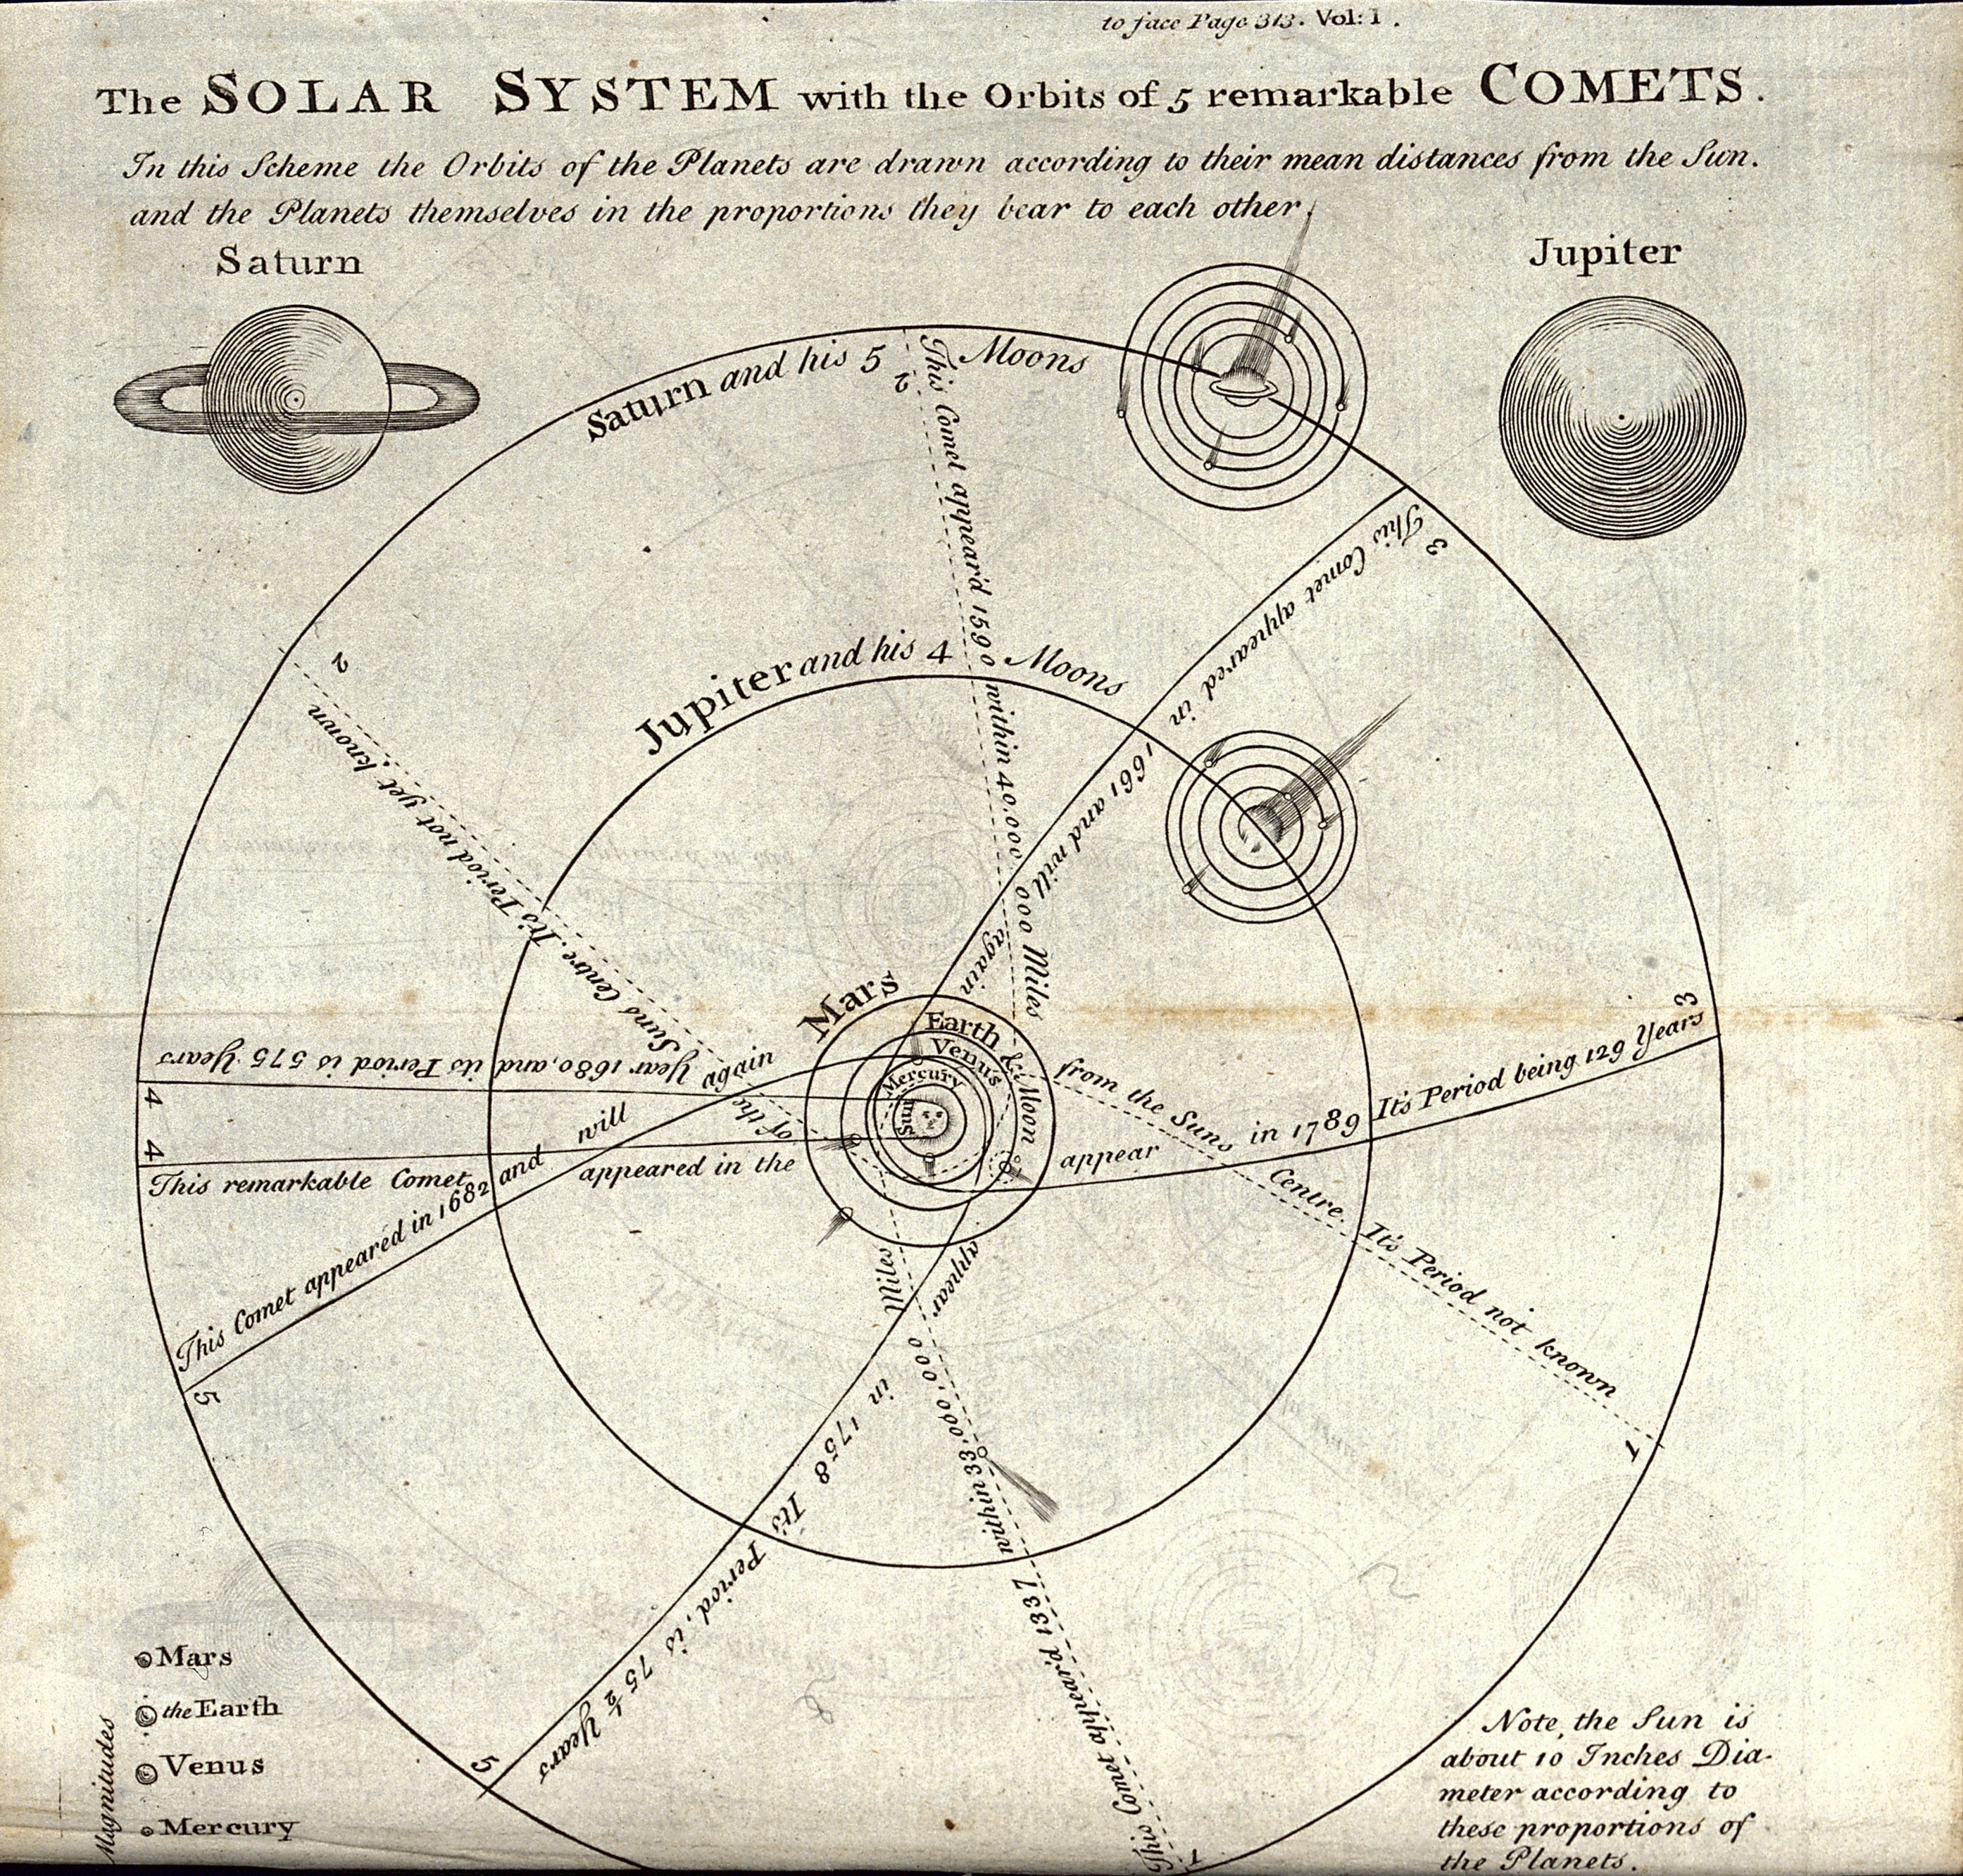 ear diagram encyclopedia file:astronomy; diagram of the path of comets. engraving ...